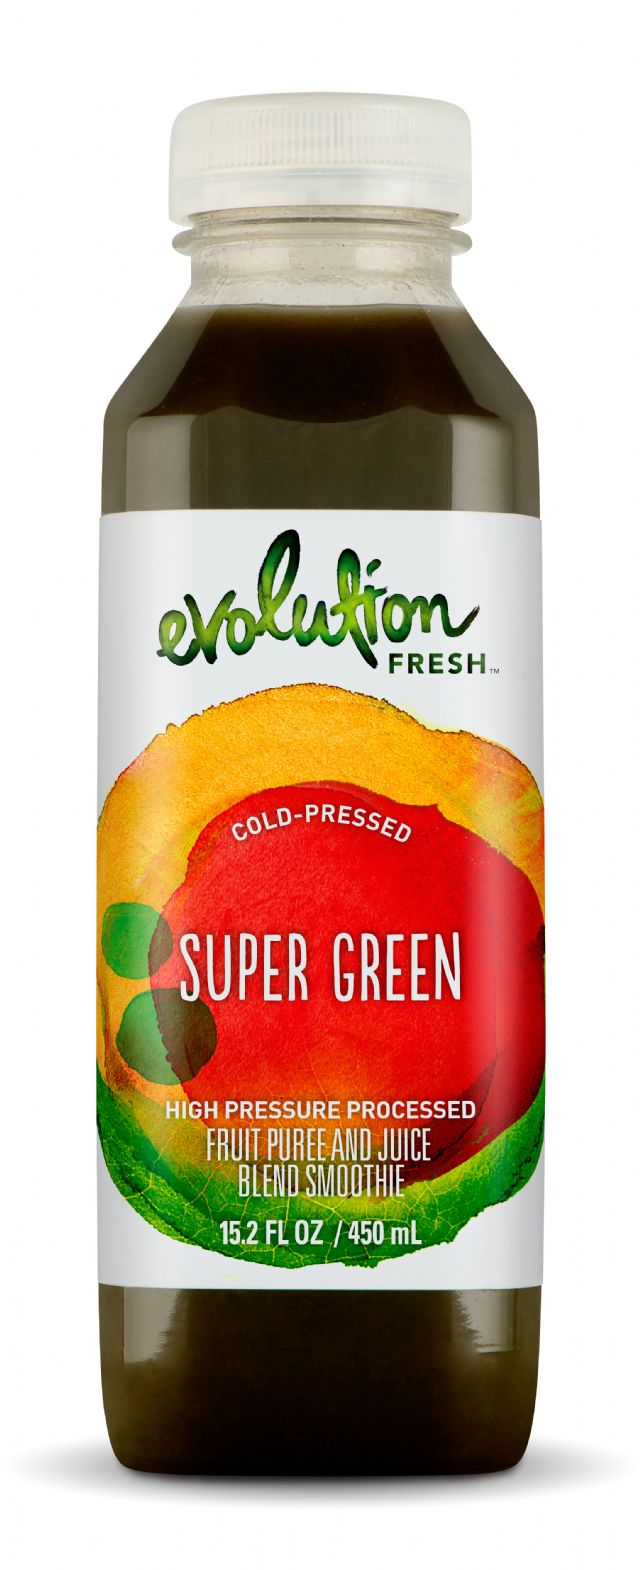 Evolution Fresh: SuperGreen copy